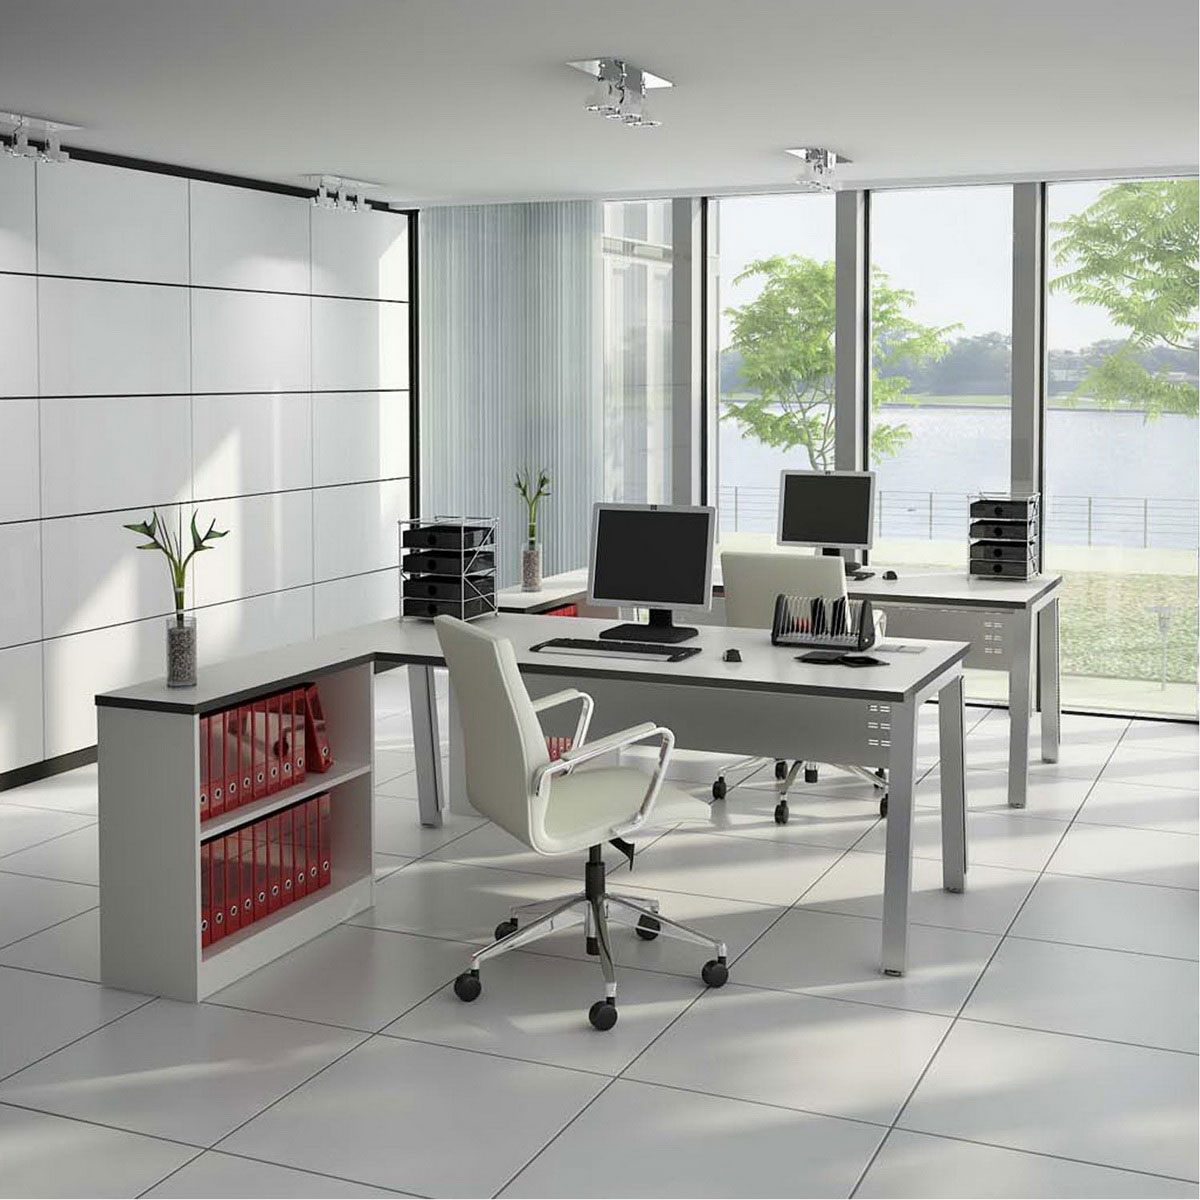 Office interior design dreams house furniture for Office decoration pictures gallery